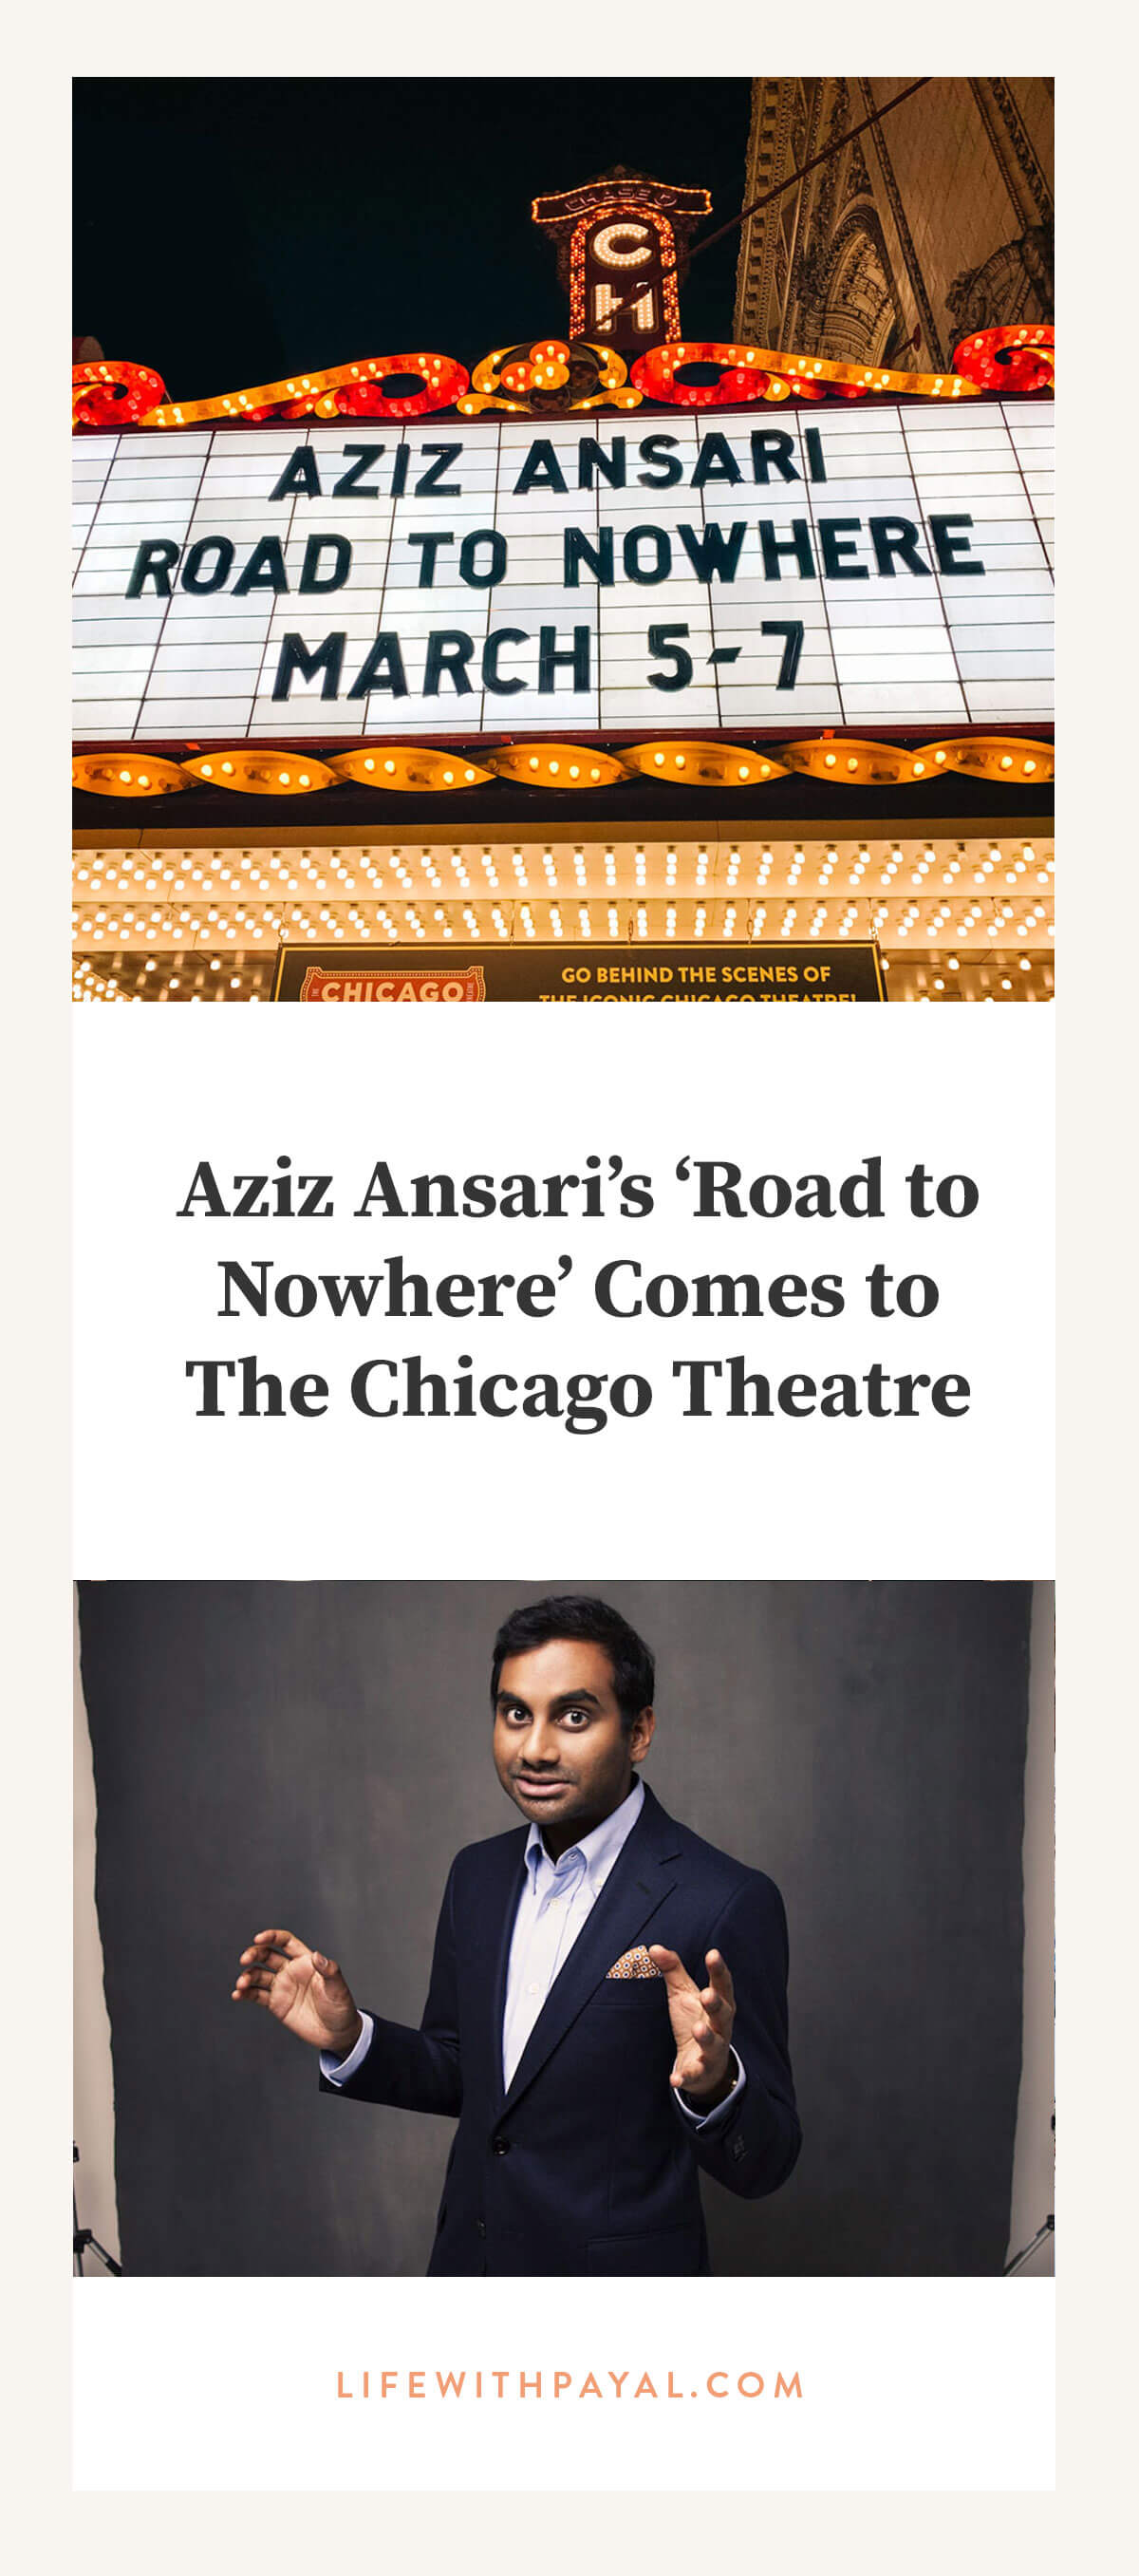 Aziz Ansari performed at The Chicago Theatre for 'Road to Nowhere' Tour | Life with Payal: Chicago Lifestyle Blogger